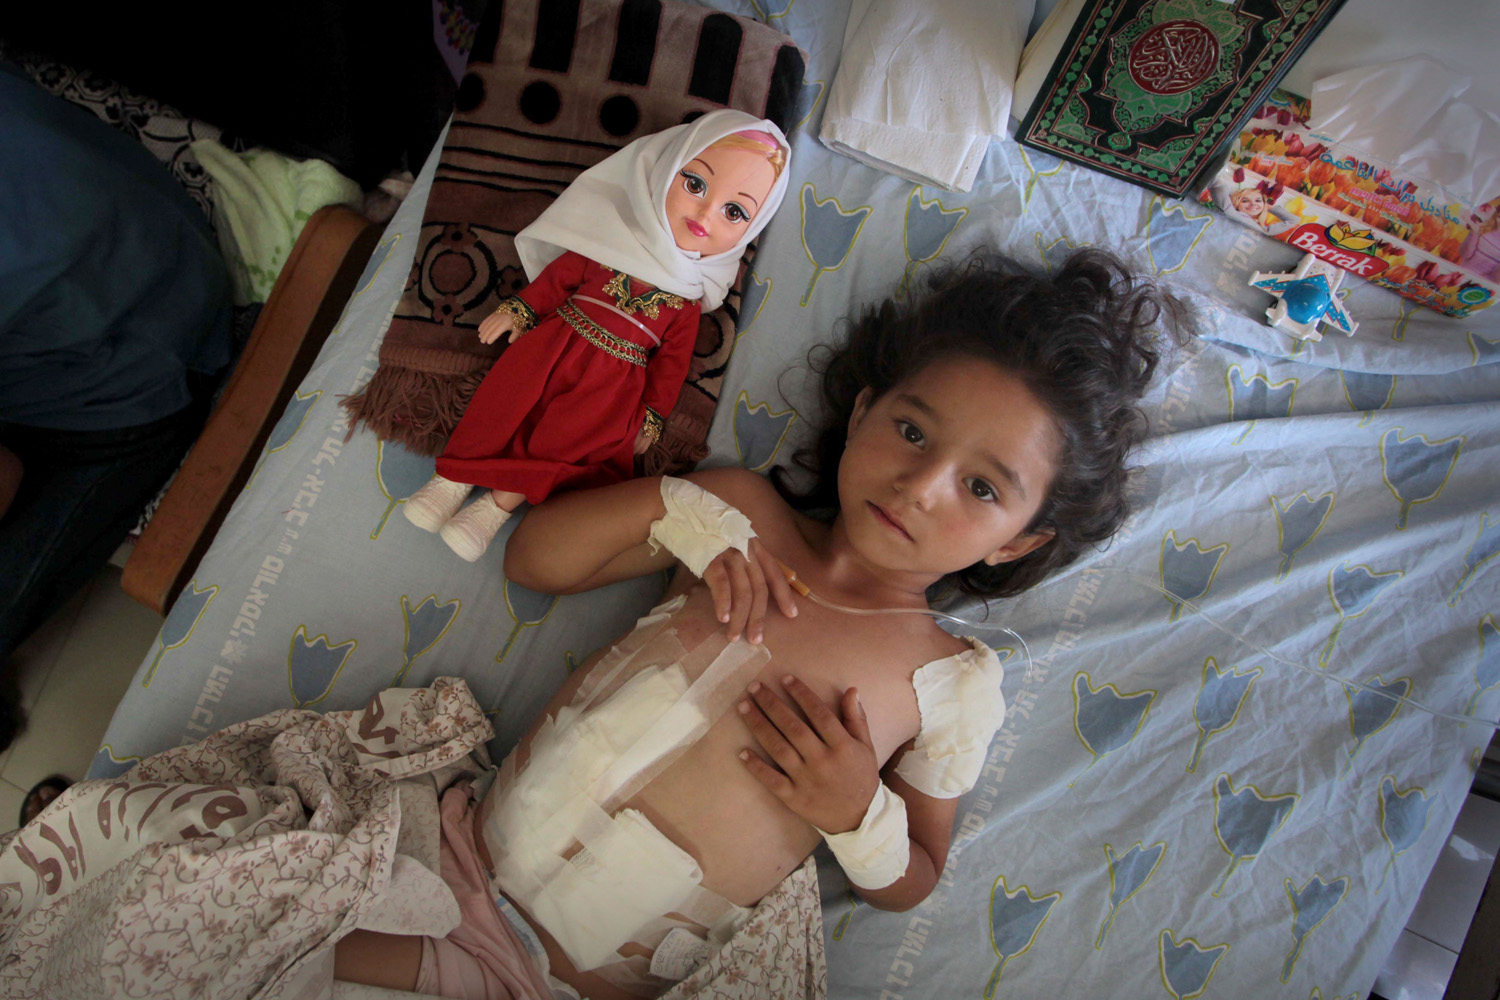 Jul. 15, 2014. Four-year-old Palestinian girl Shayma Al-Masri, who hospital officials said was wounded in an Israeli air strike that killed her mother and two of her siblings, lies on a bed next to her doll as she receives treatment at a hospital.